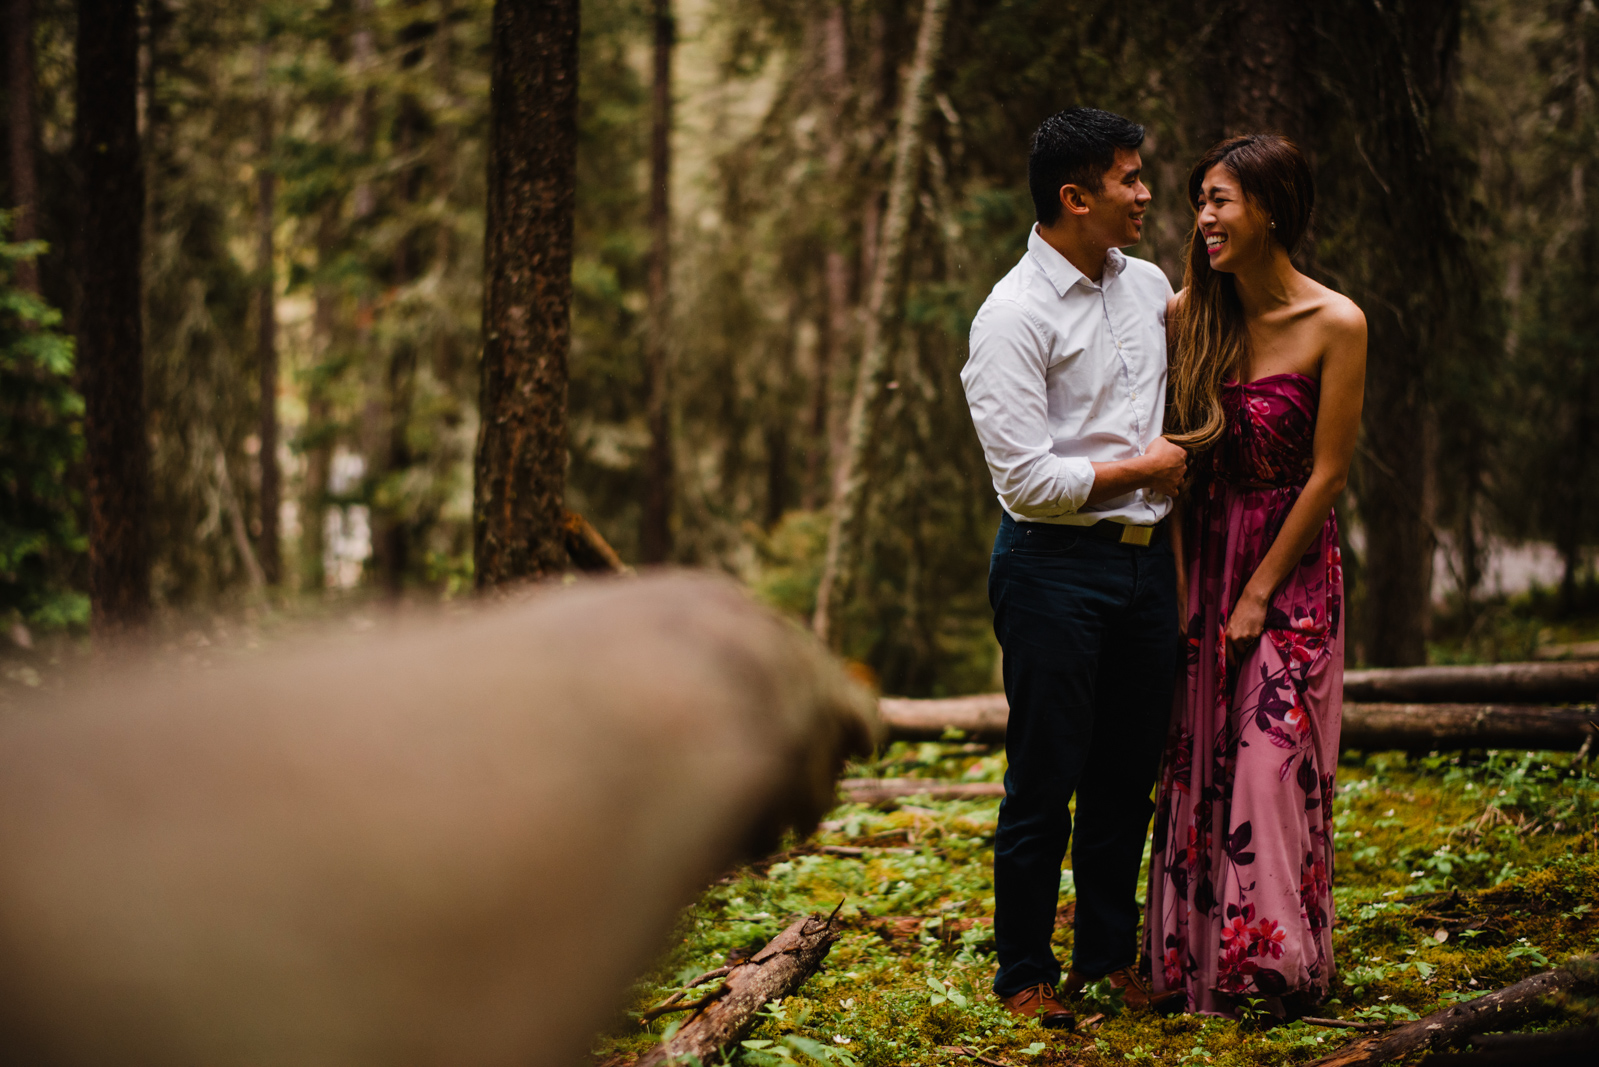 Banff-Wedding-Photographer-michaelchan-5.jpg